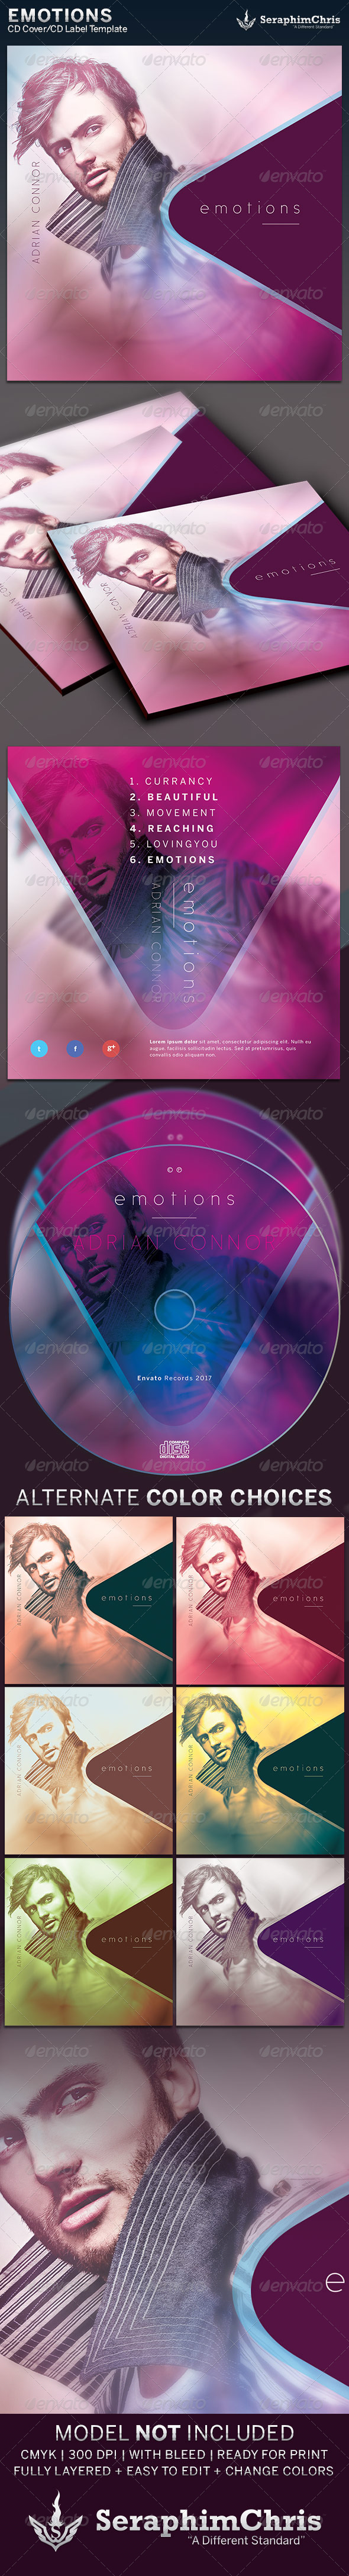 GraphicRiver Emotions CD Cover Artwork Template 6372151